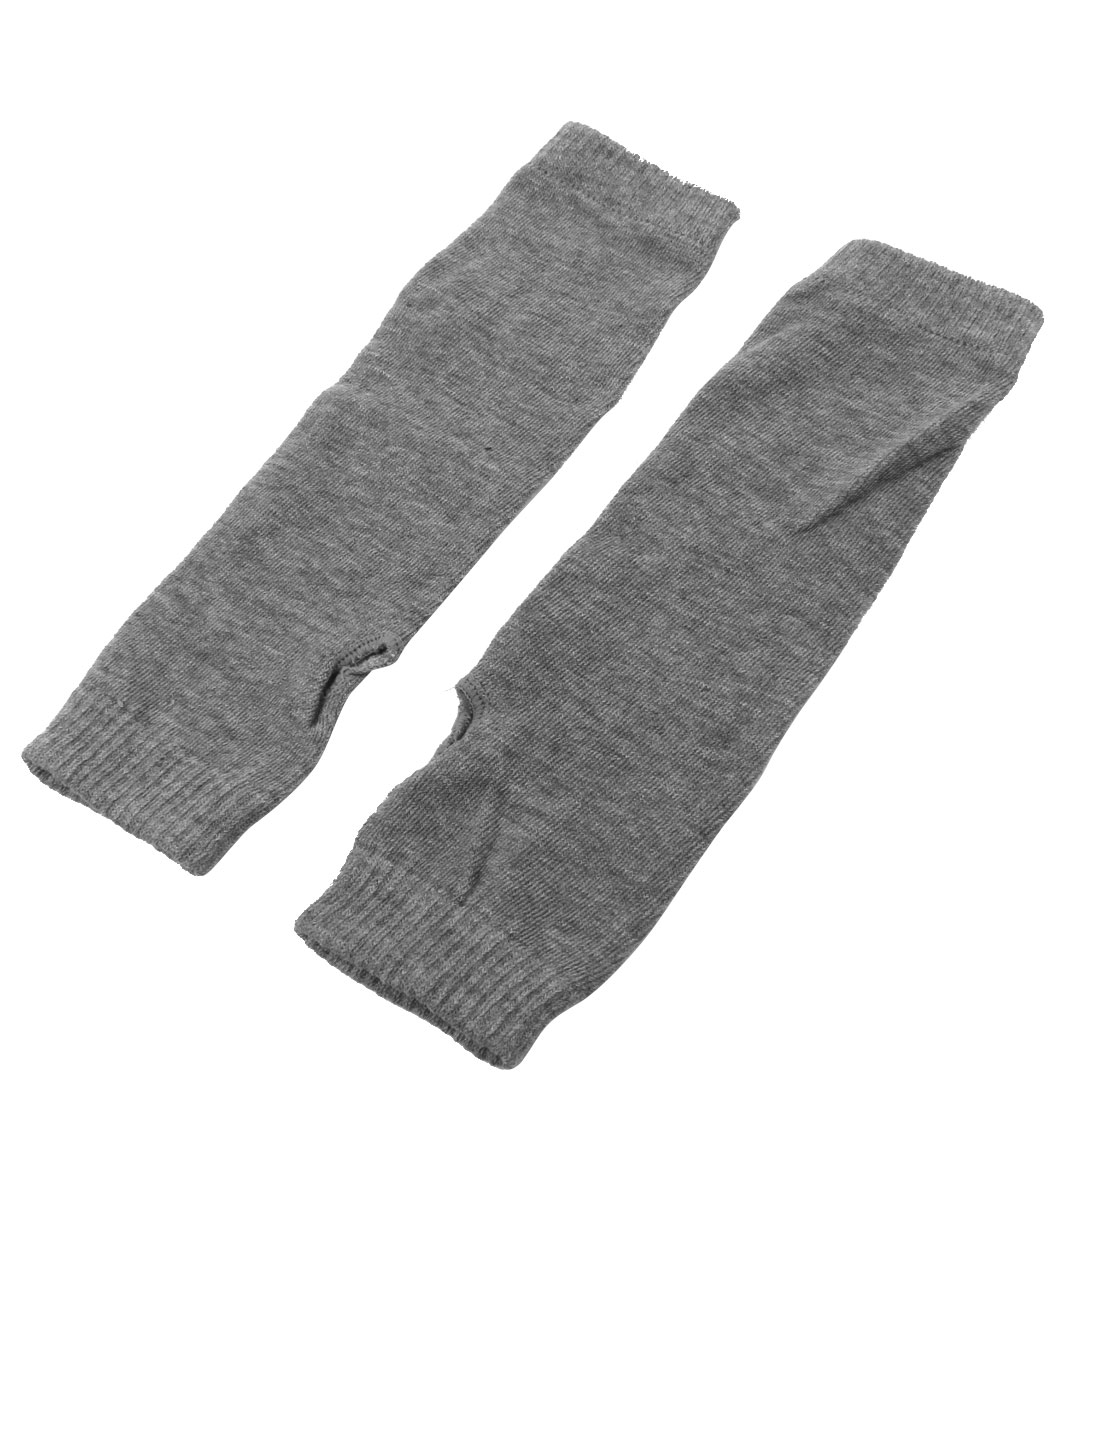 Ladies Winter Elastic Thumbless Fingerless Arm Warmers Gloves Gray